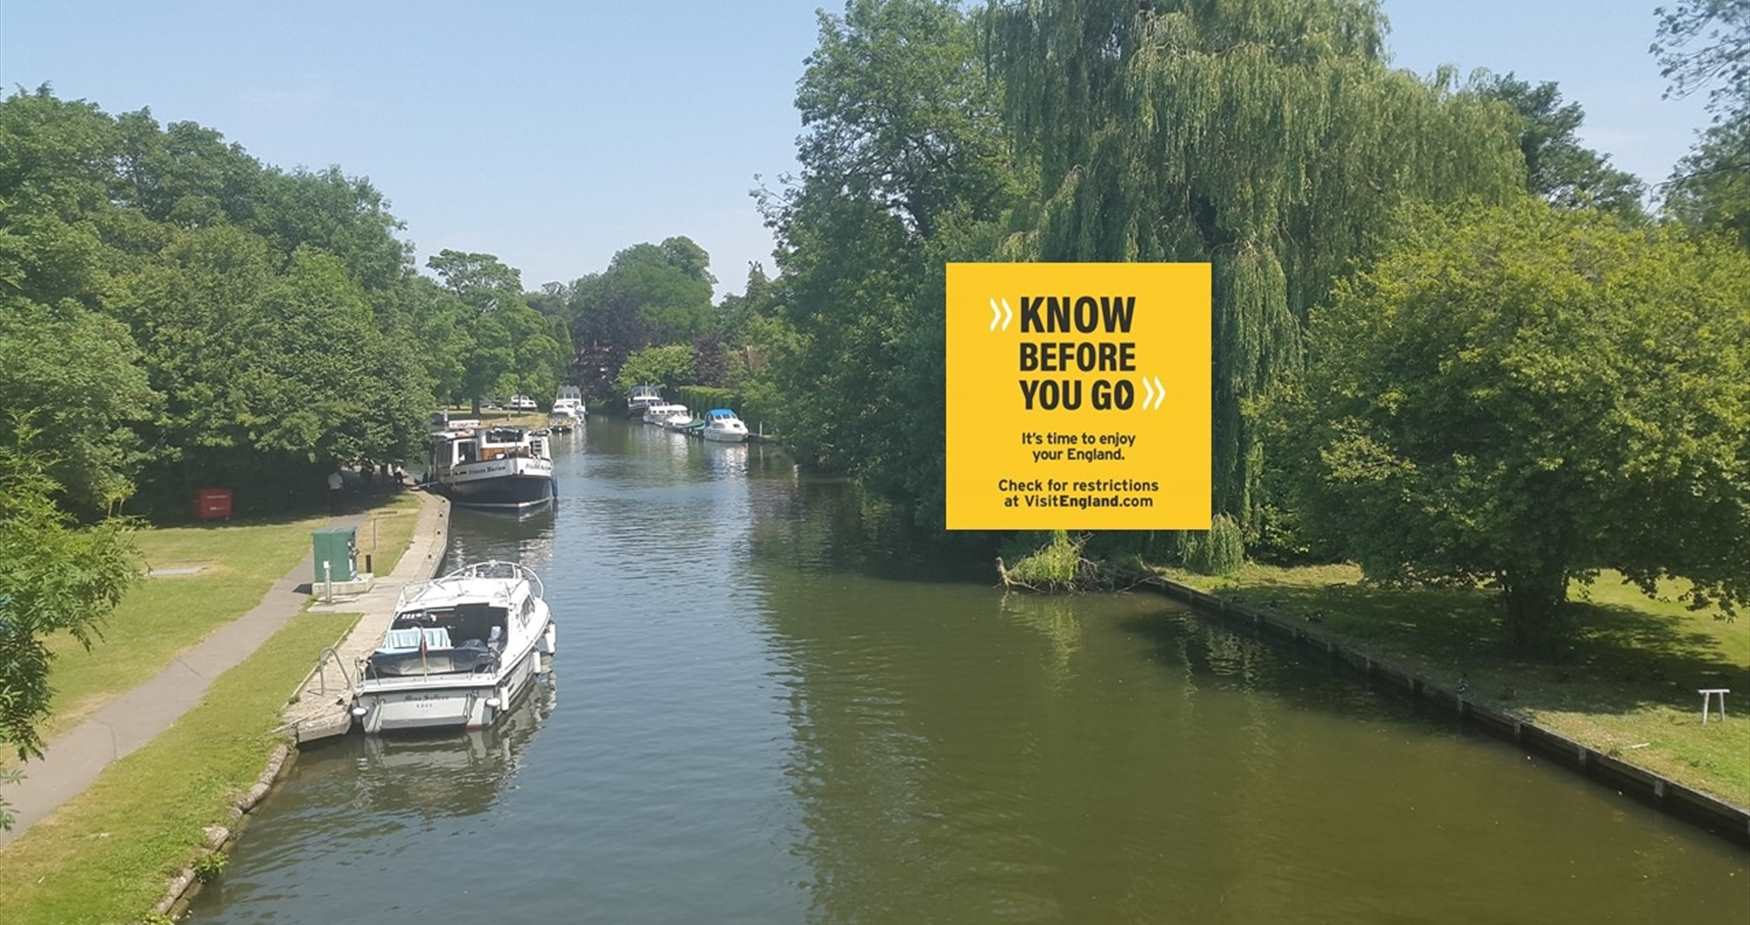 River Thames at Hurley Lock, Know Before You Go